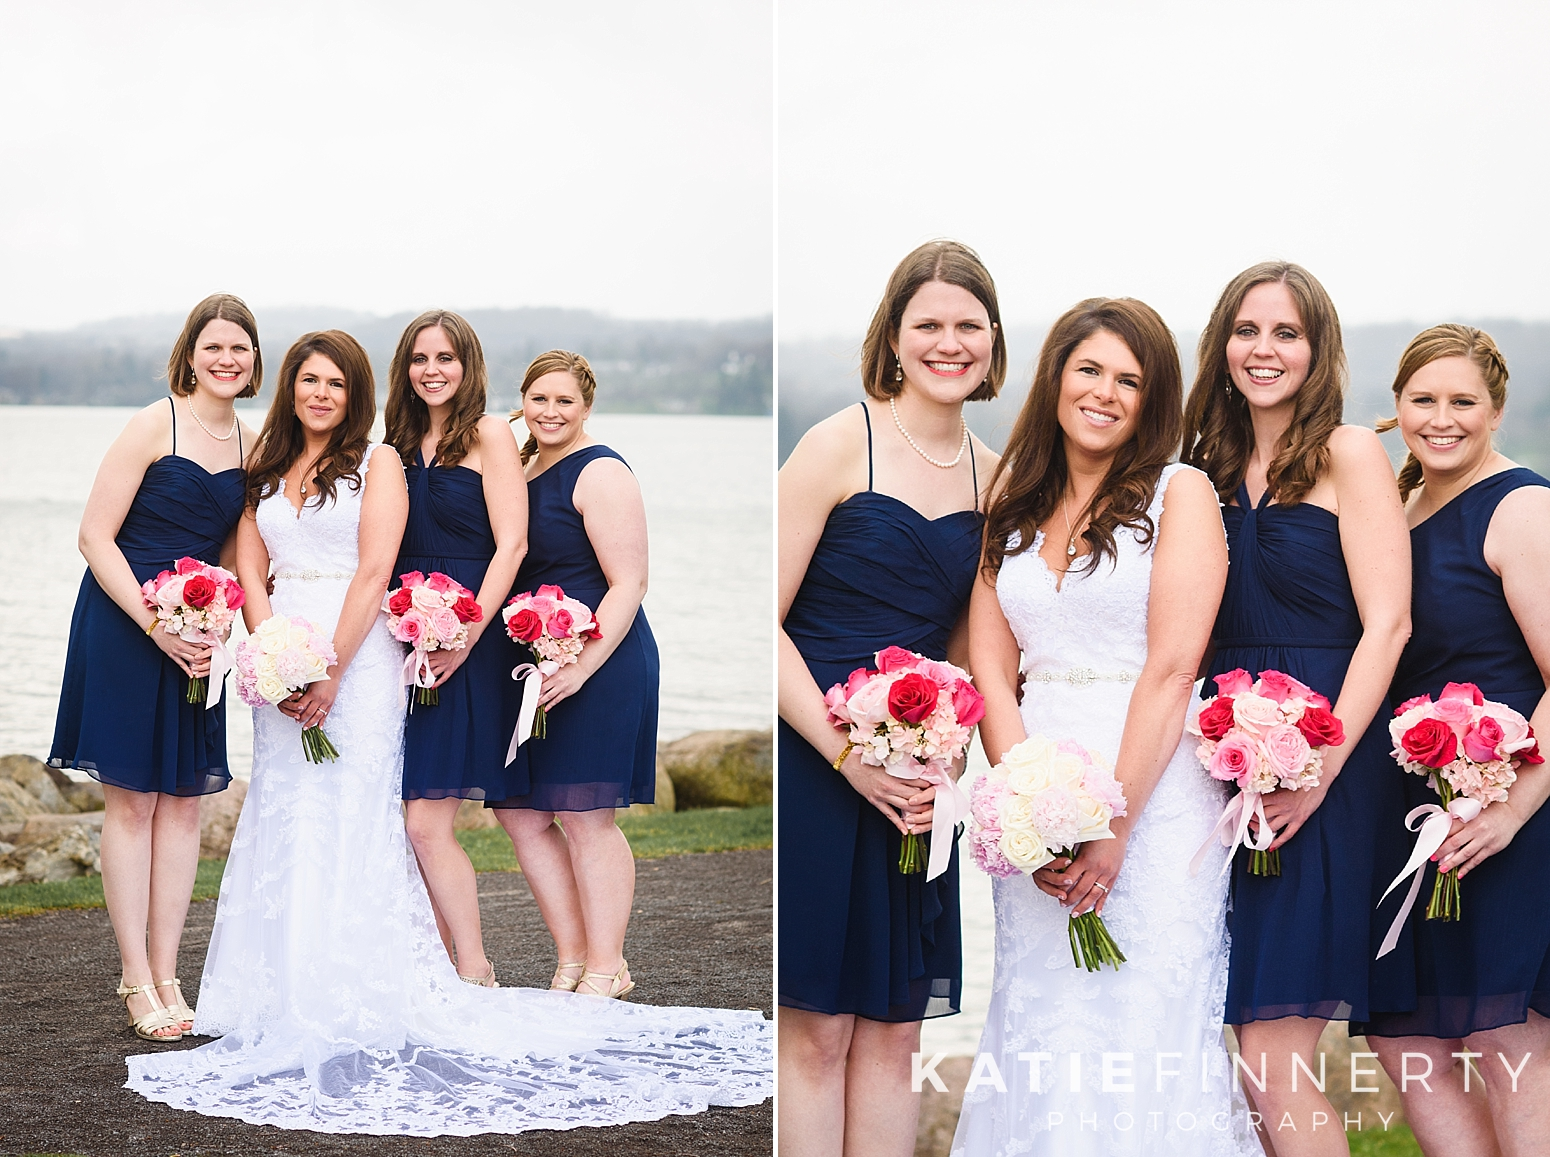 Kershaw Park Canandaigua Wedding Photography